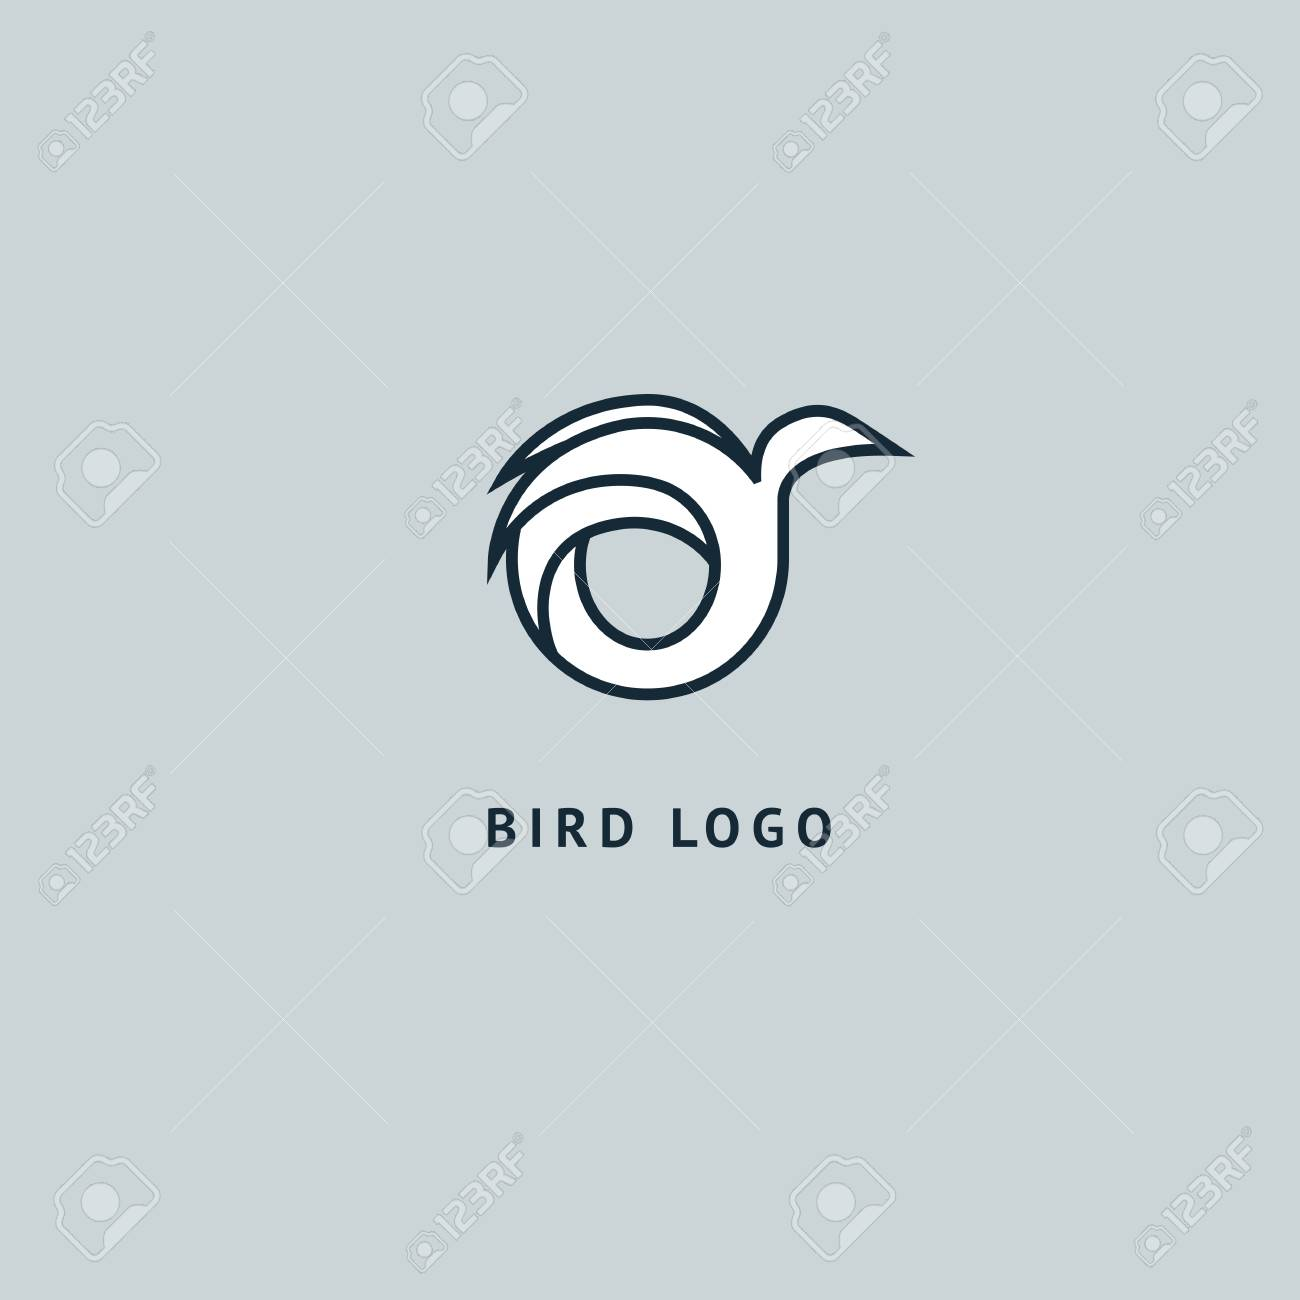 abstract sign vector logotype editable design minimalist sign royalty free cliparts vectors and stock illustration image 111387941 123rf com